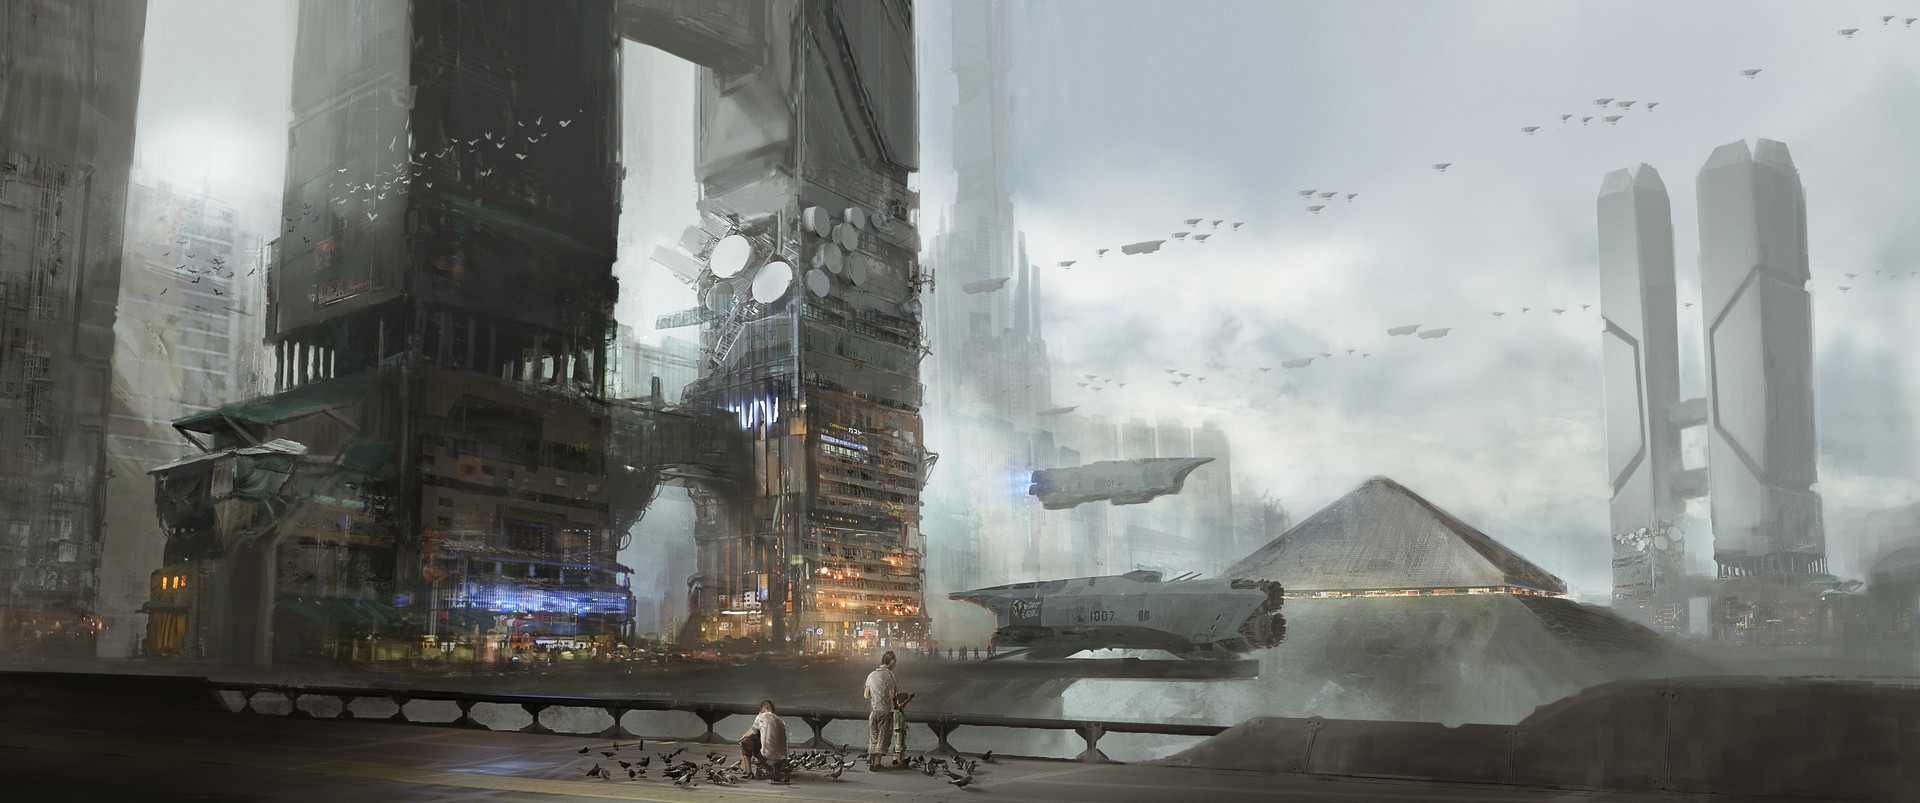 the-scifi-art-of-nick-foreman-4